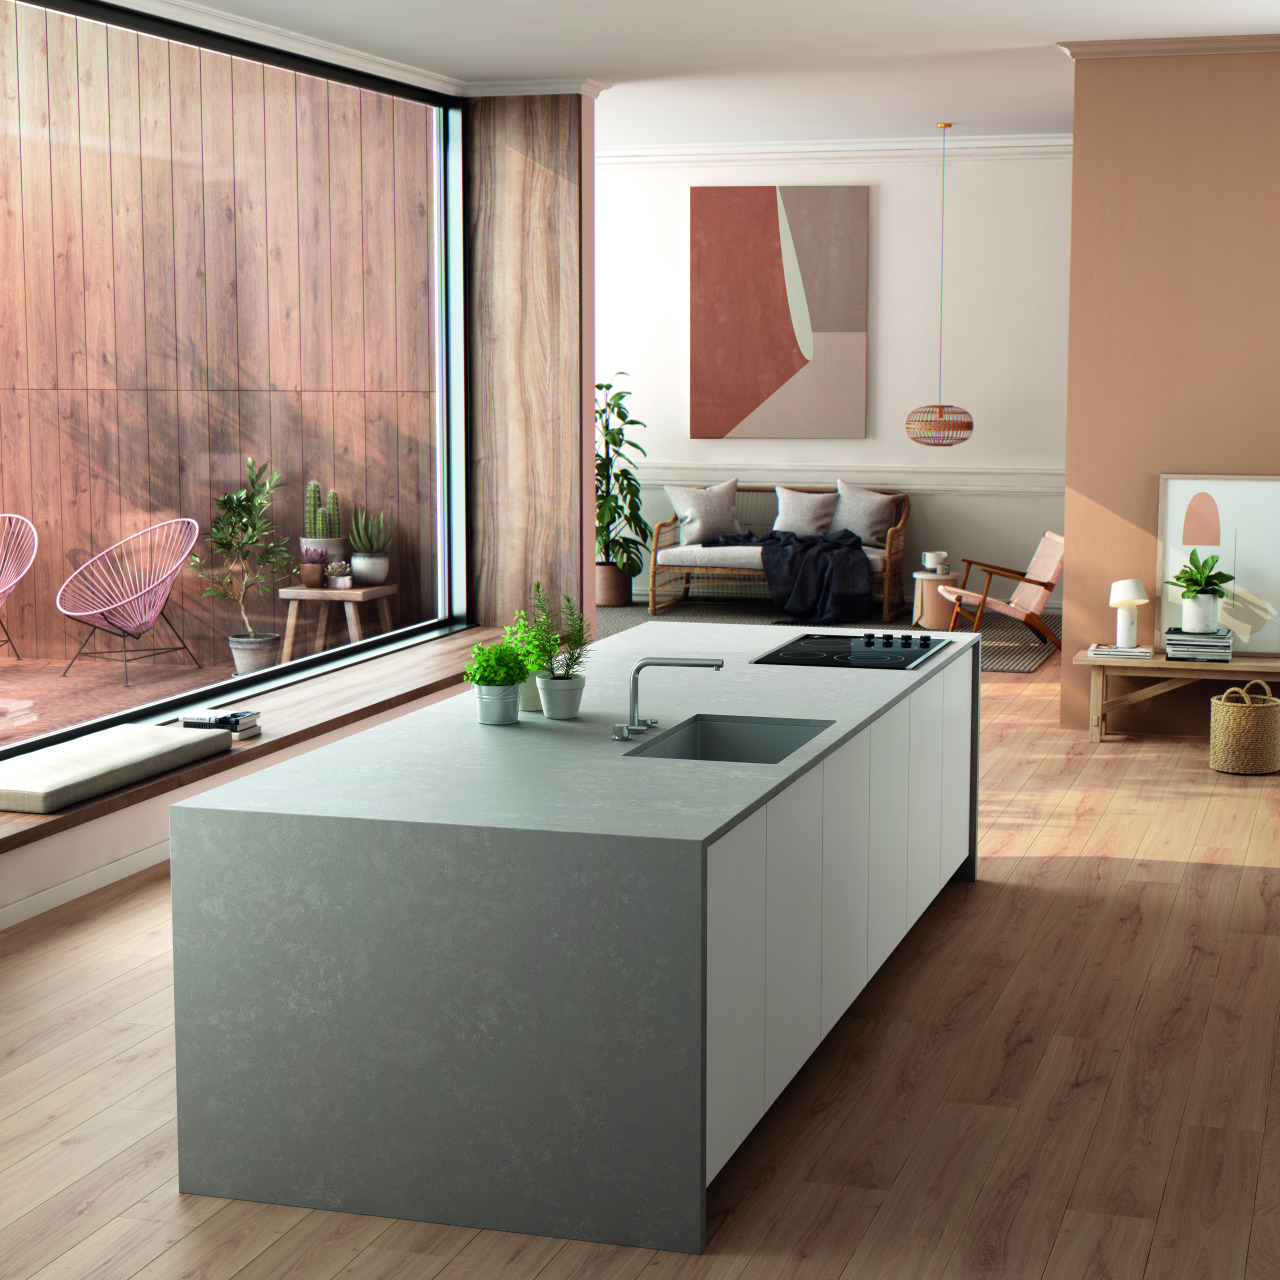 Silestone Poblenou – a warm shade of grey